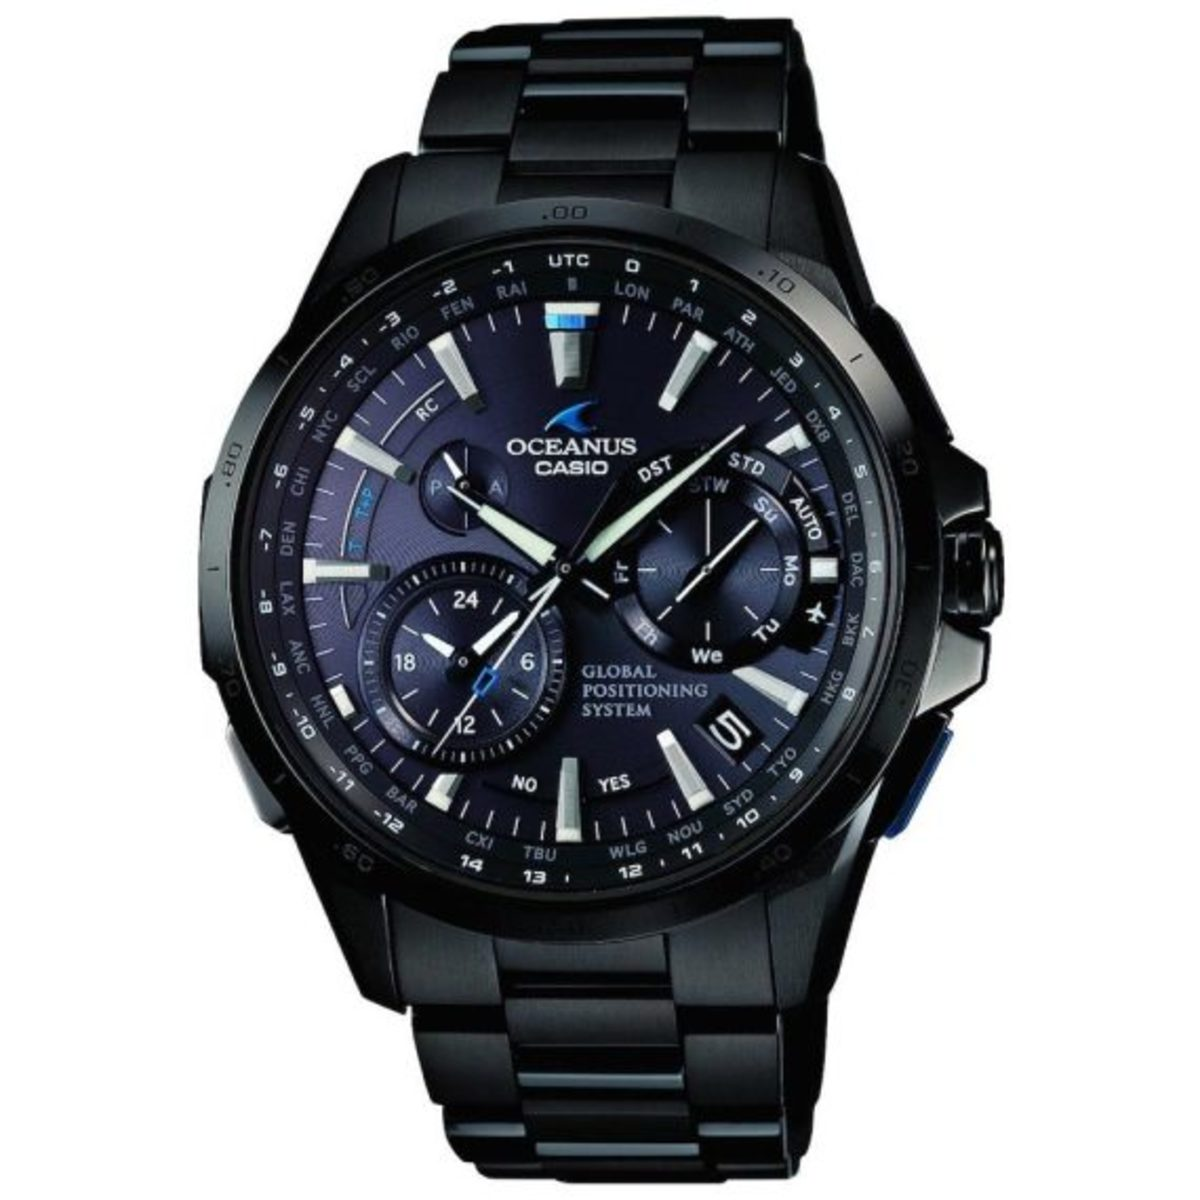 casio-oceanus-ocw-g1000-watch-01